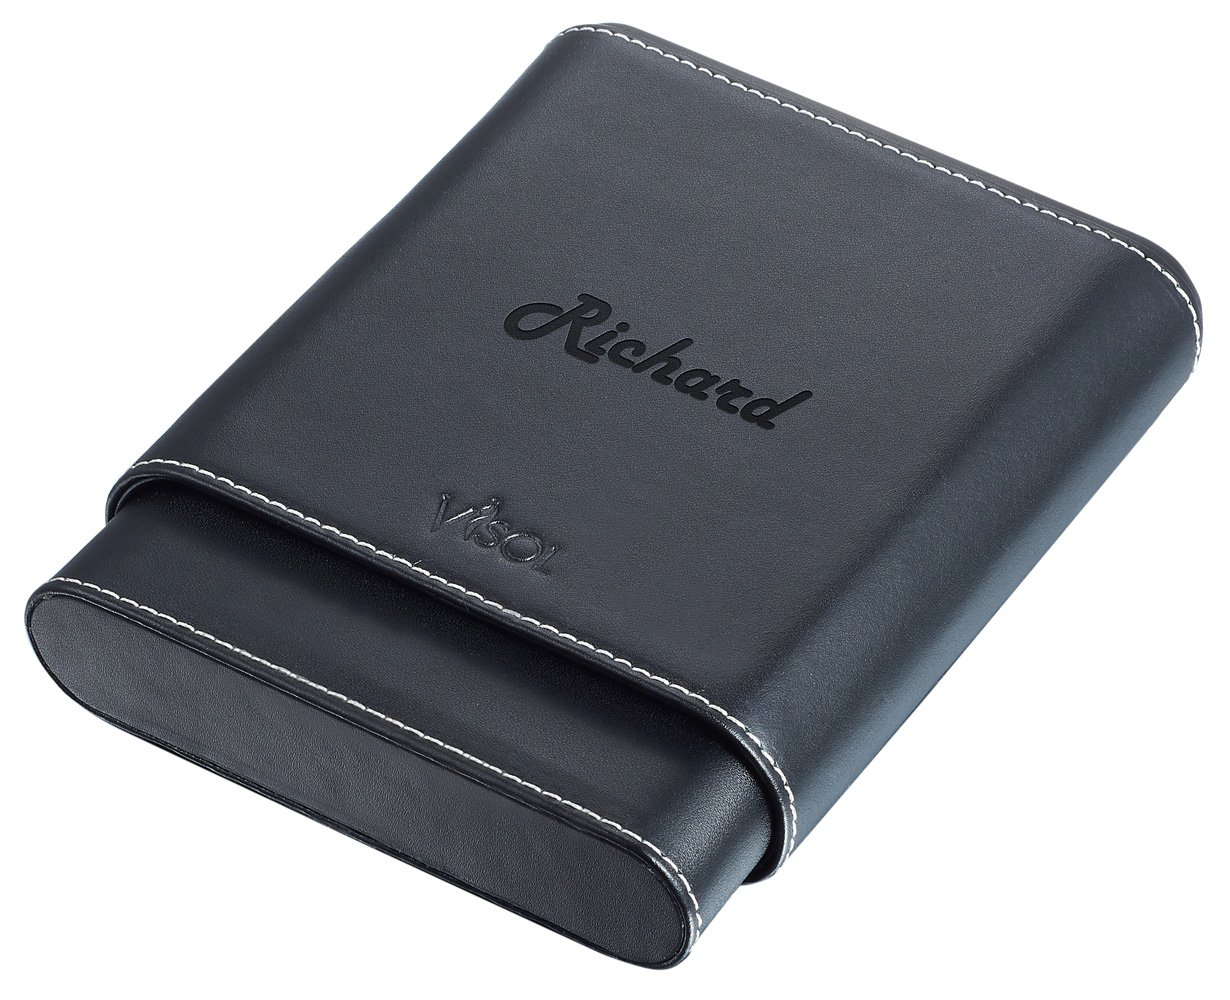 Personalized Visol Cuero Genuine Black Leather 56-Gauge 5-Finger Cigar Case - With Free Engraving